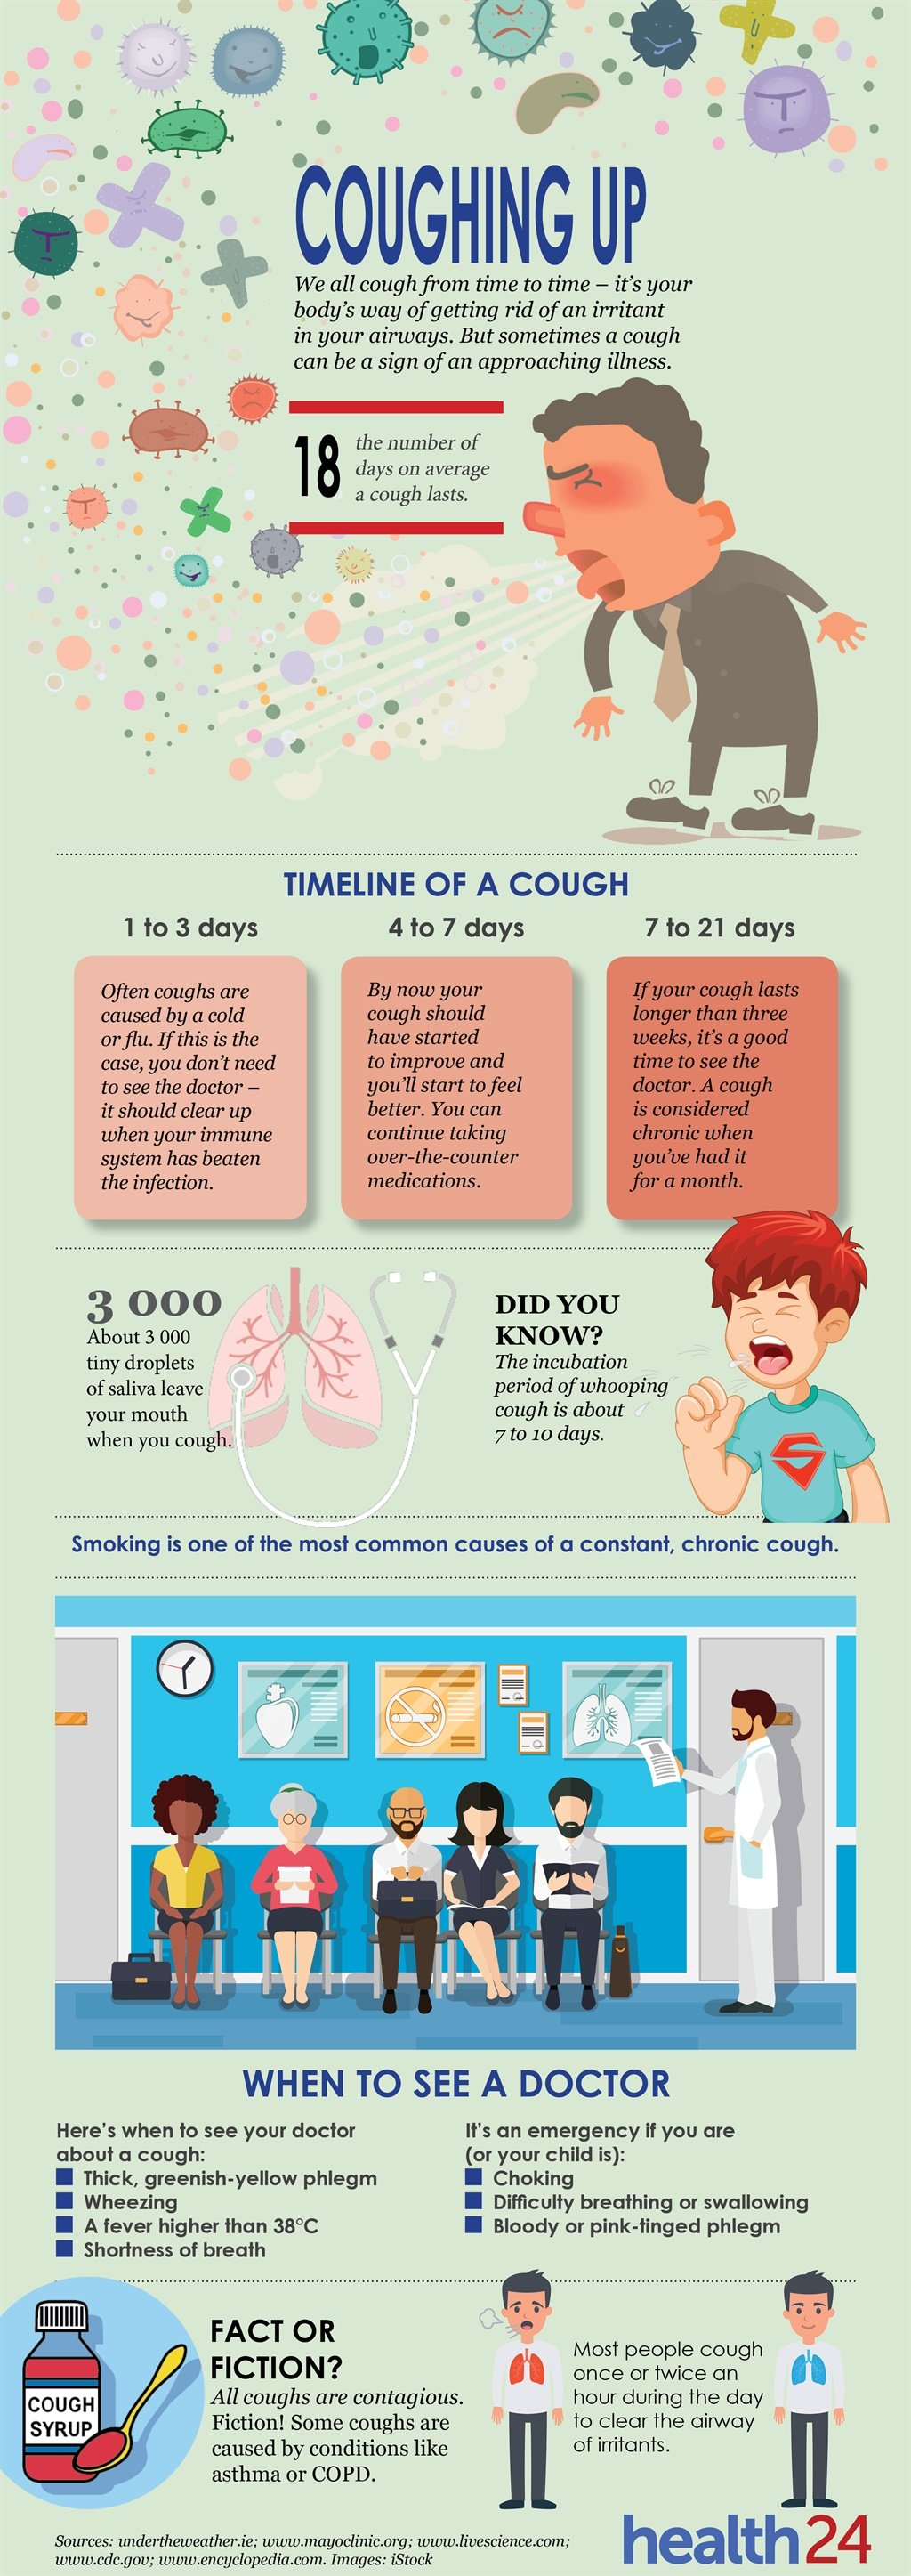 recipe: how long does a cough last [25]